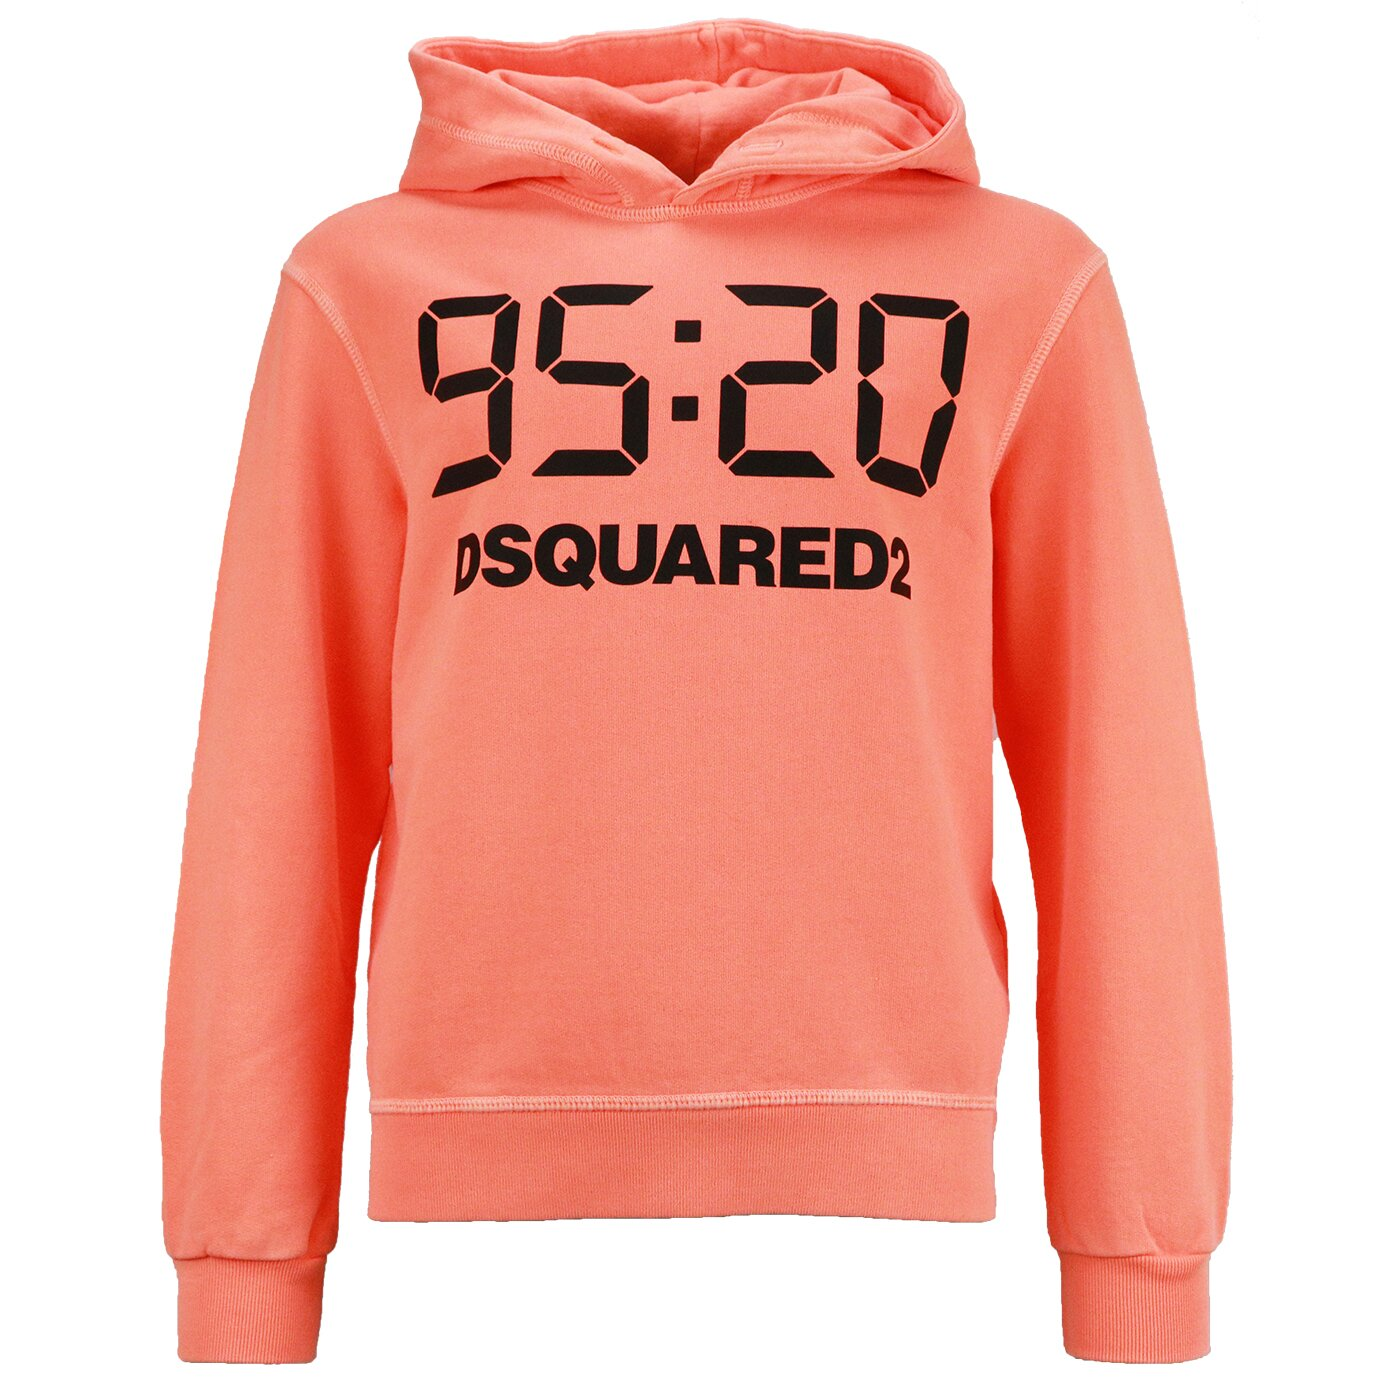 Dsquared hoody Fluo Orange 95-20 Relax Fit